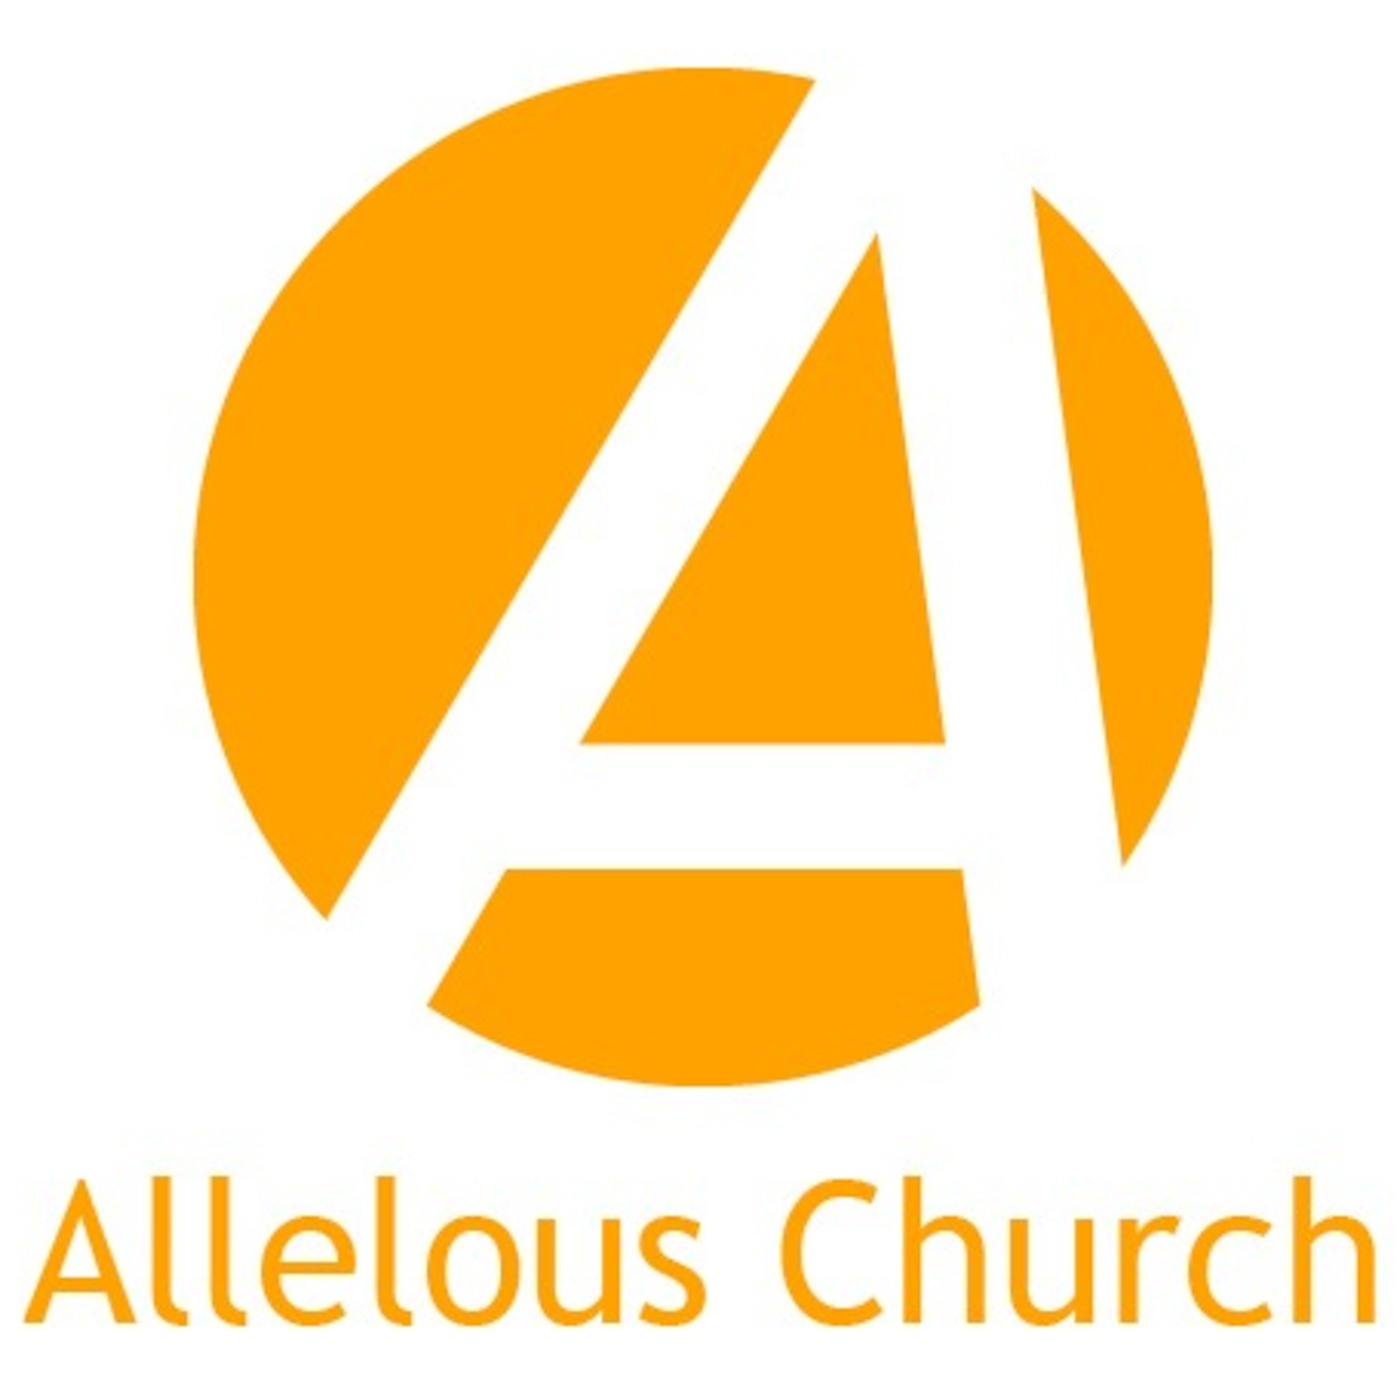 Allelous Church